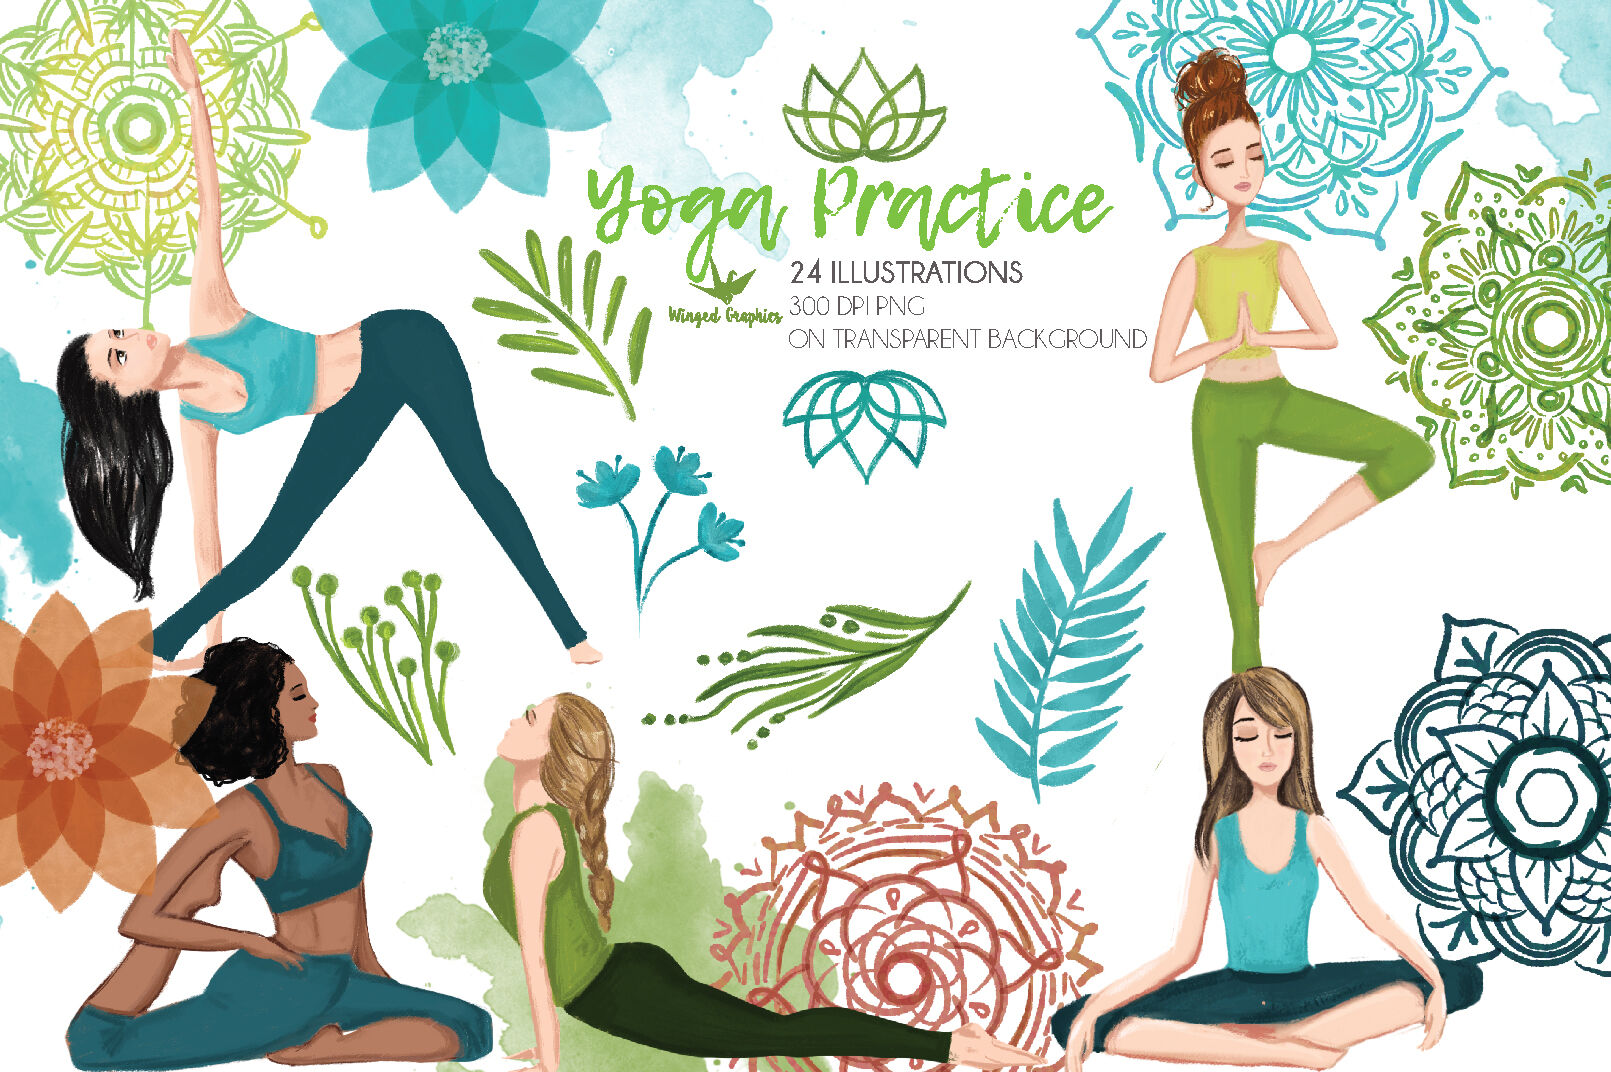 Yoga Practice Set Of 24 Illustrations 300 Dpi Png On Transparent Bac By Winged Graphics Thehungryjpeg Com